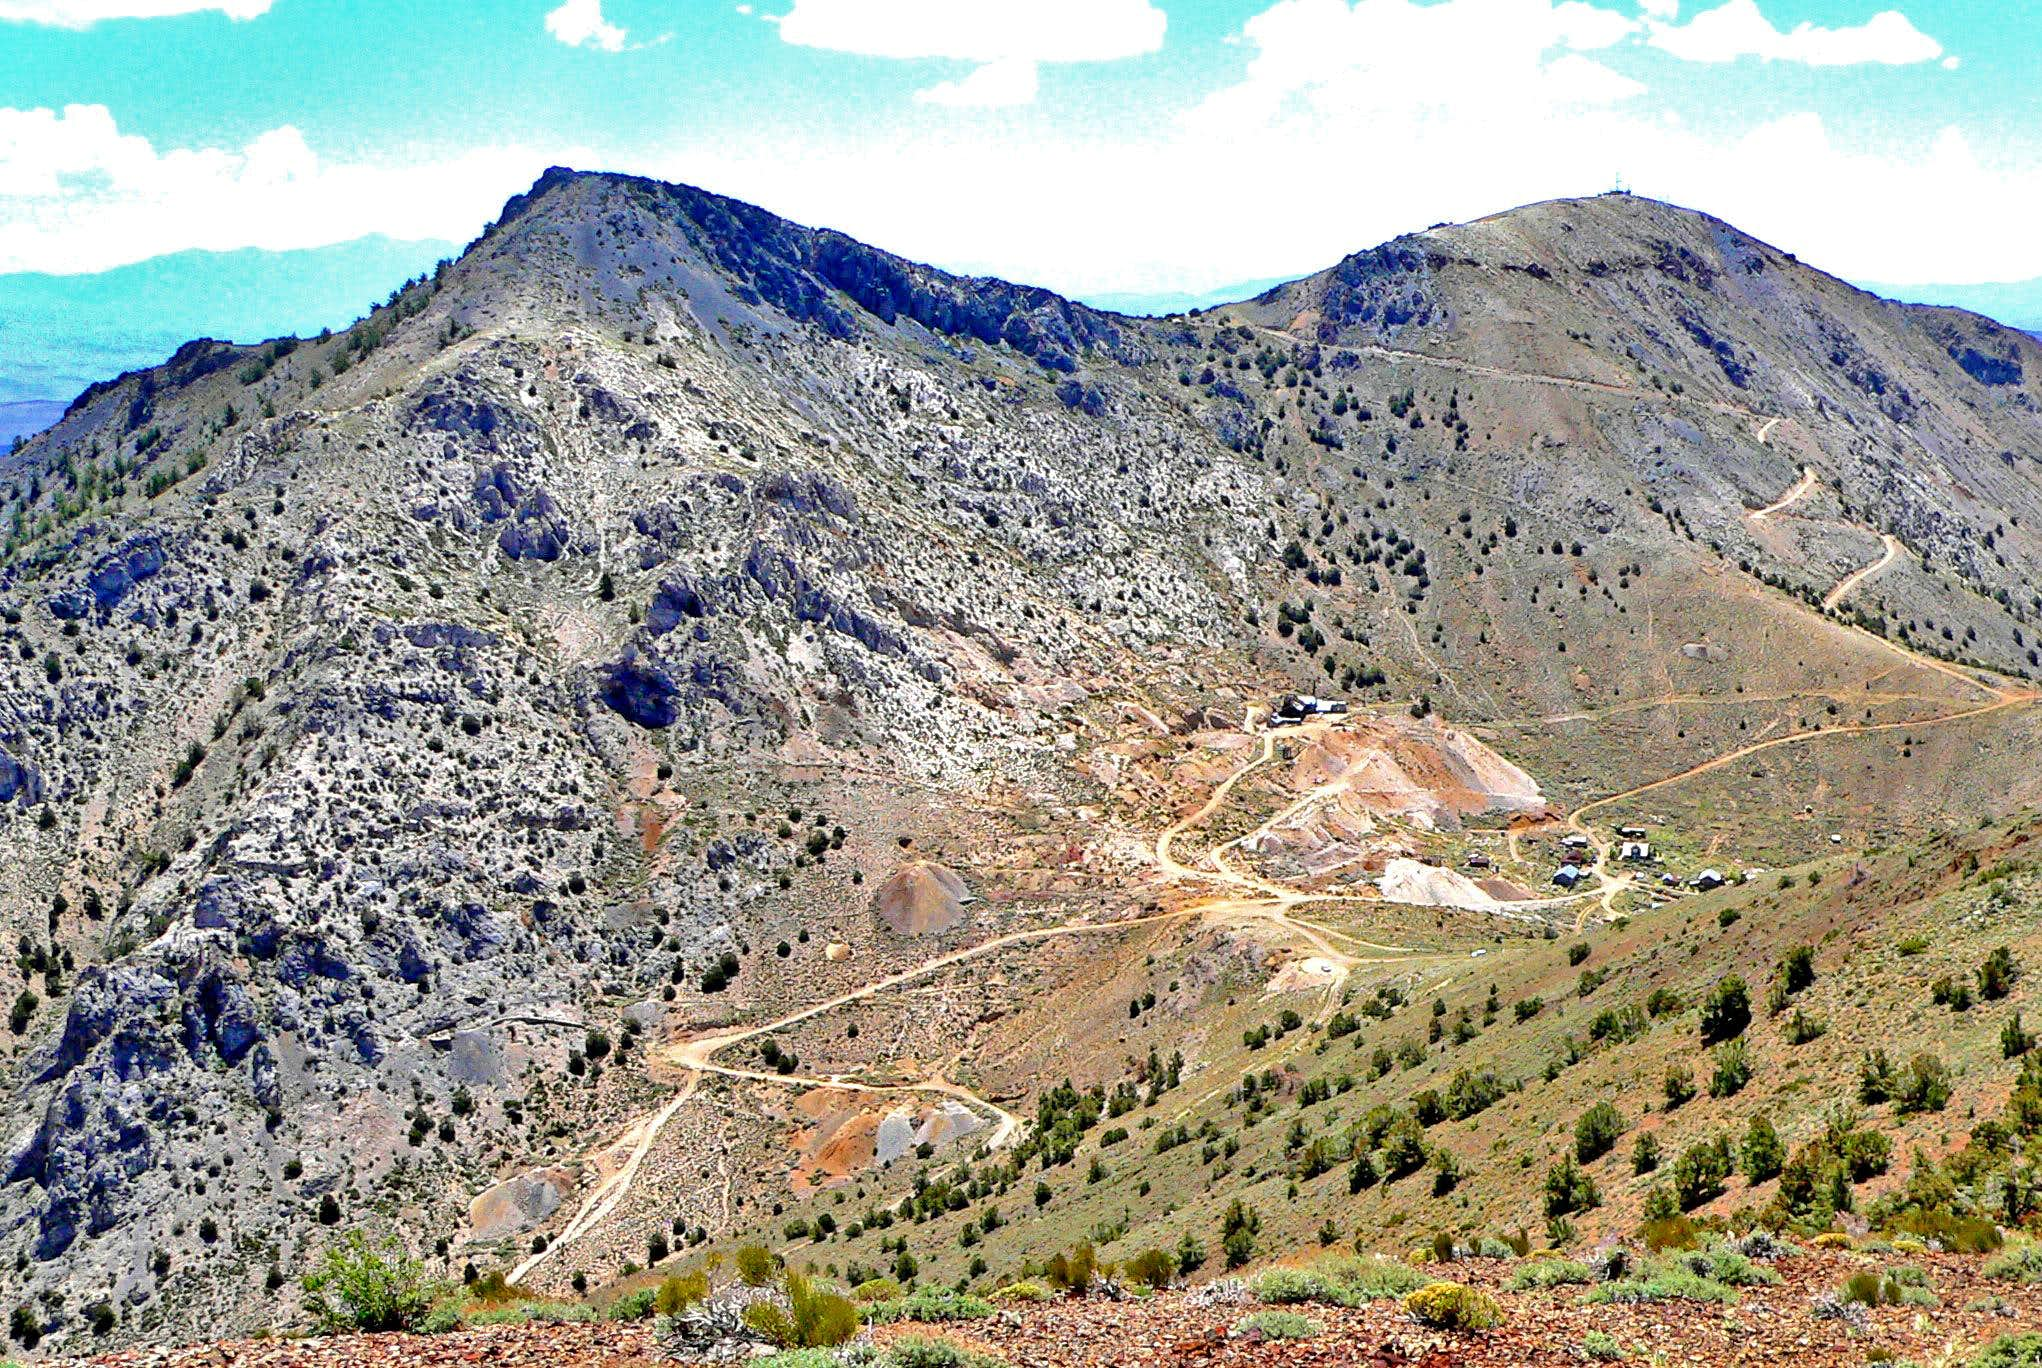 Cerro Gordo Peak